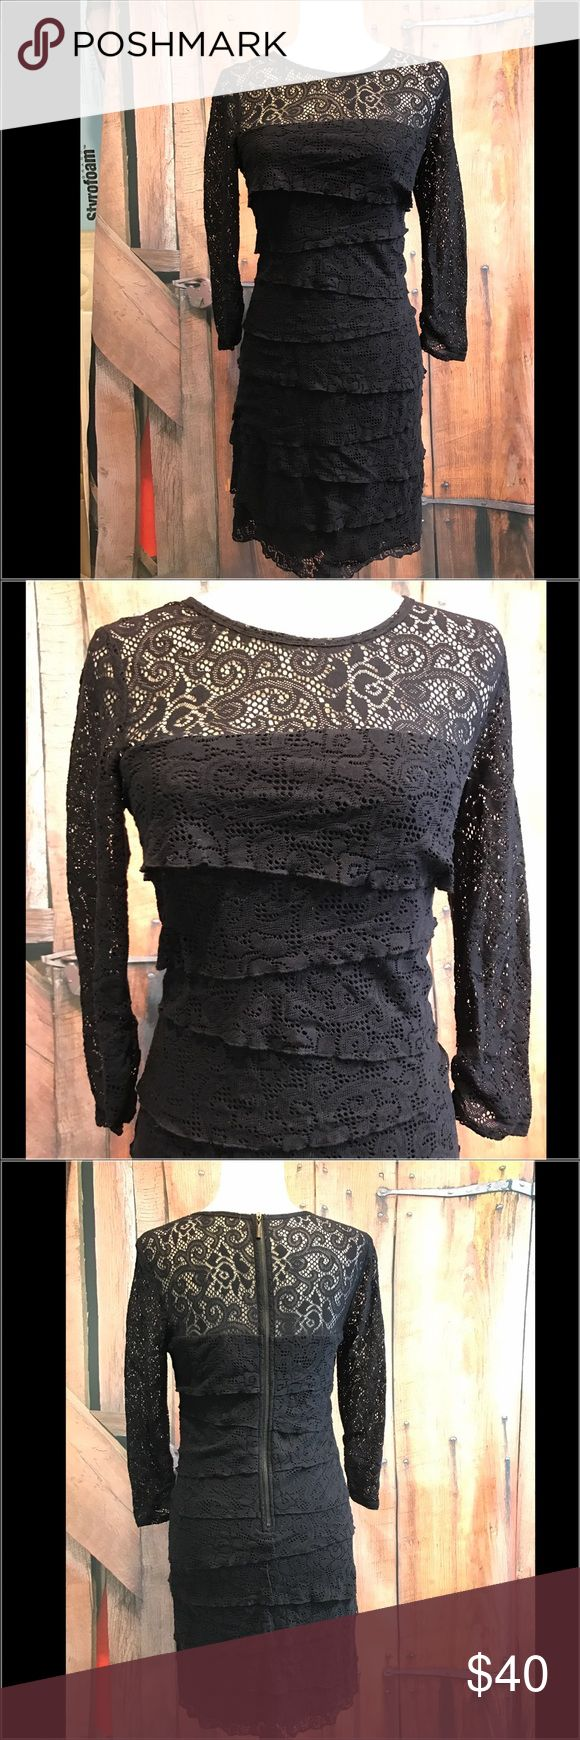 LAUNDRY by Shelli Segal lace dress 🌹🌹🇺🇸🇺🇸 Gorgeous black lace LAUNDRY dress by Shelli Segal. Size 6. Smoke free home.  Next day shipping. Please feel free to ask any questions. Thank you for shopping my closet. Offers always welcome❤️ Laundry by Shelli Segal Dresses